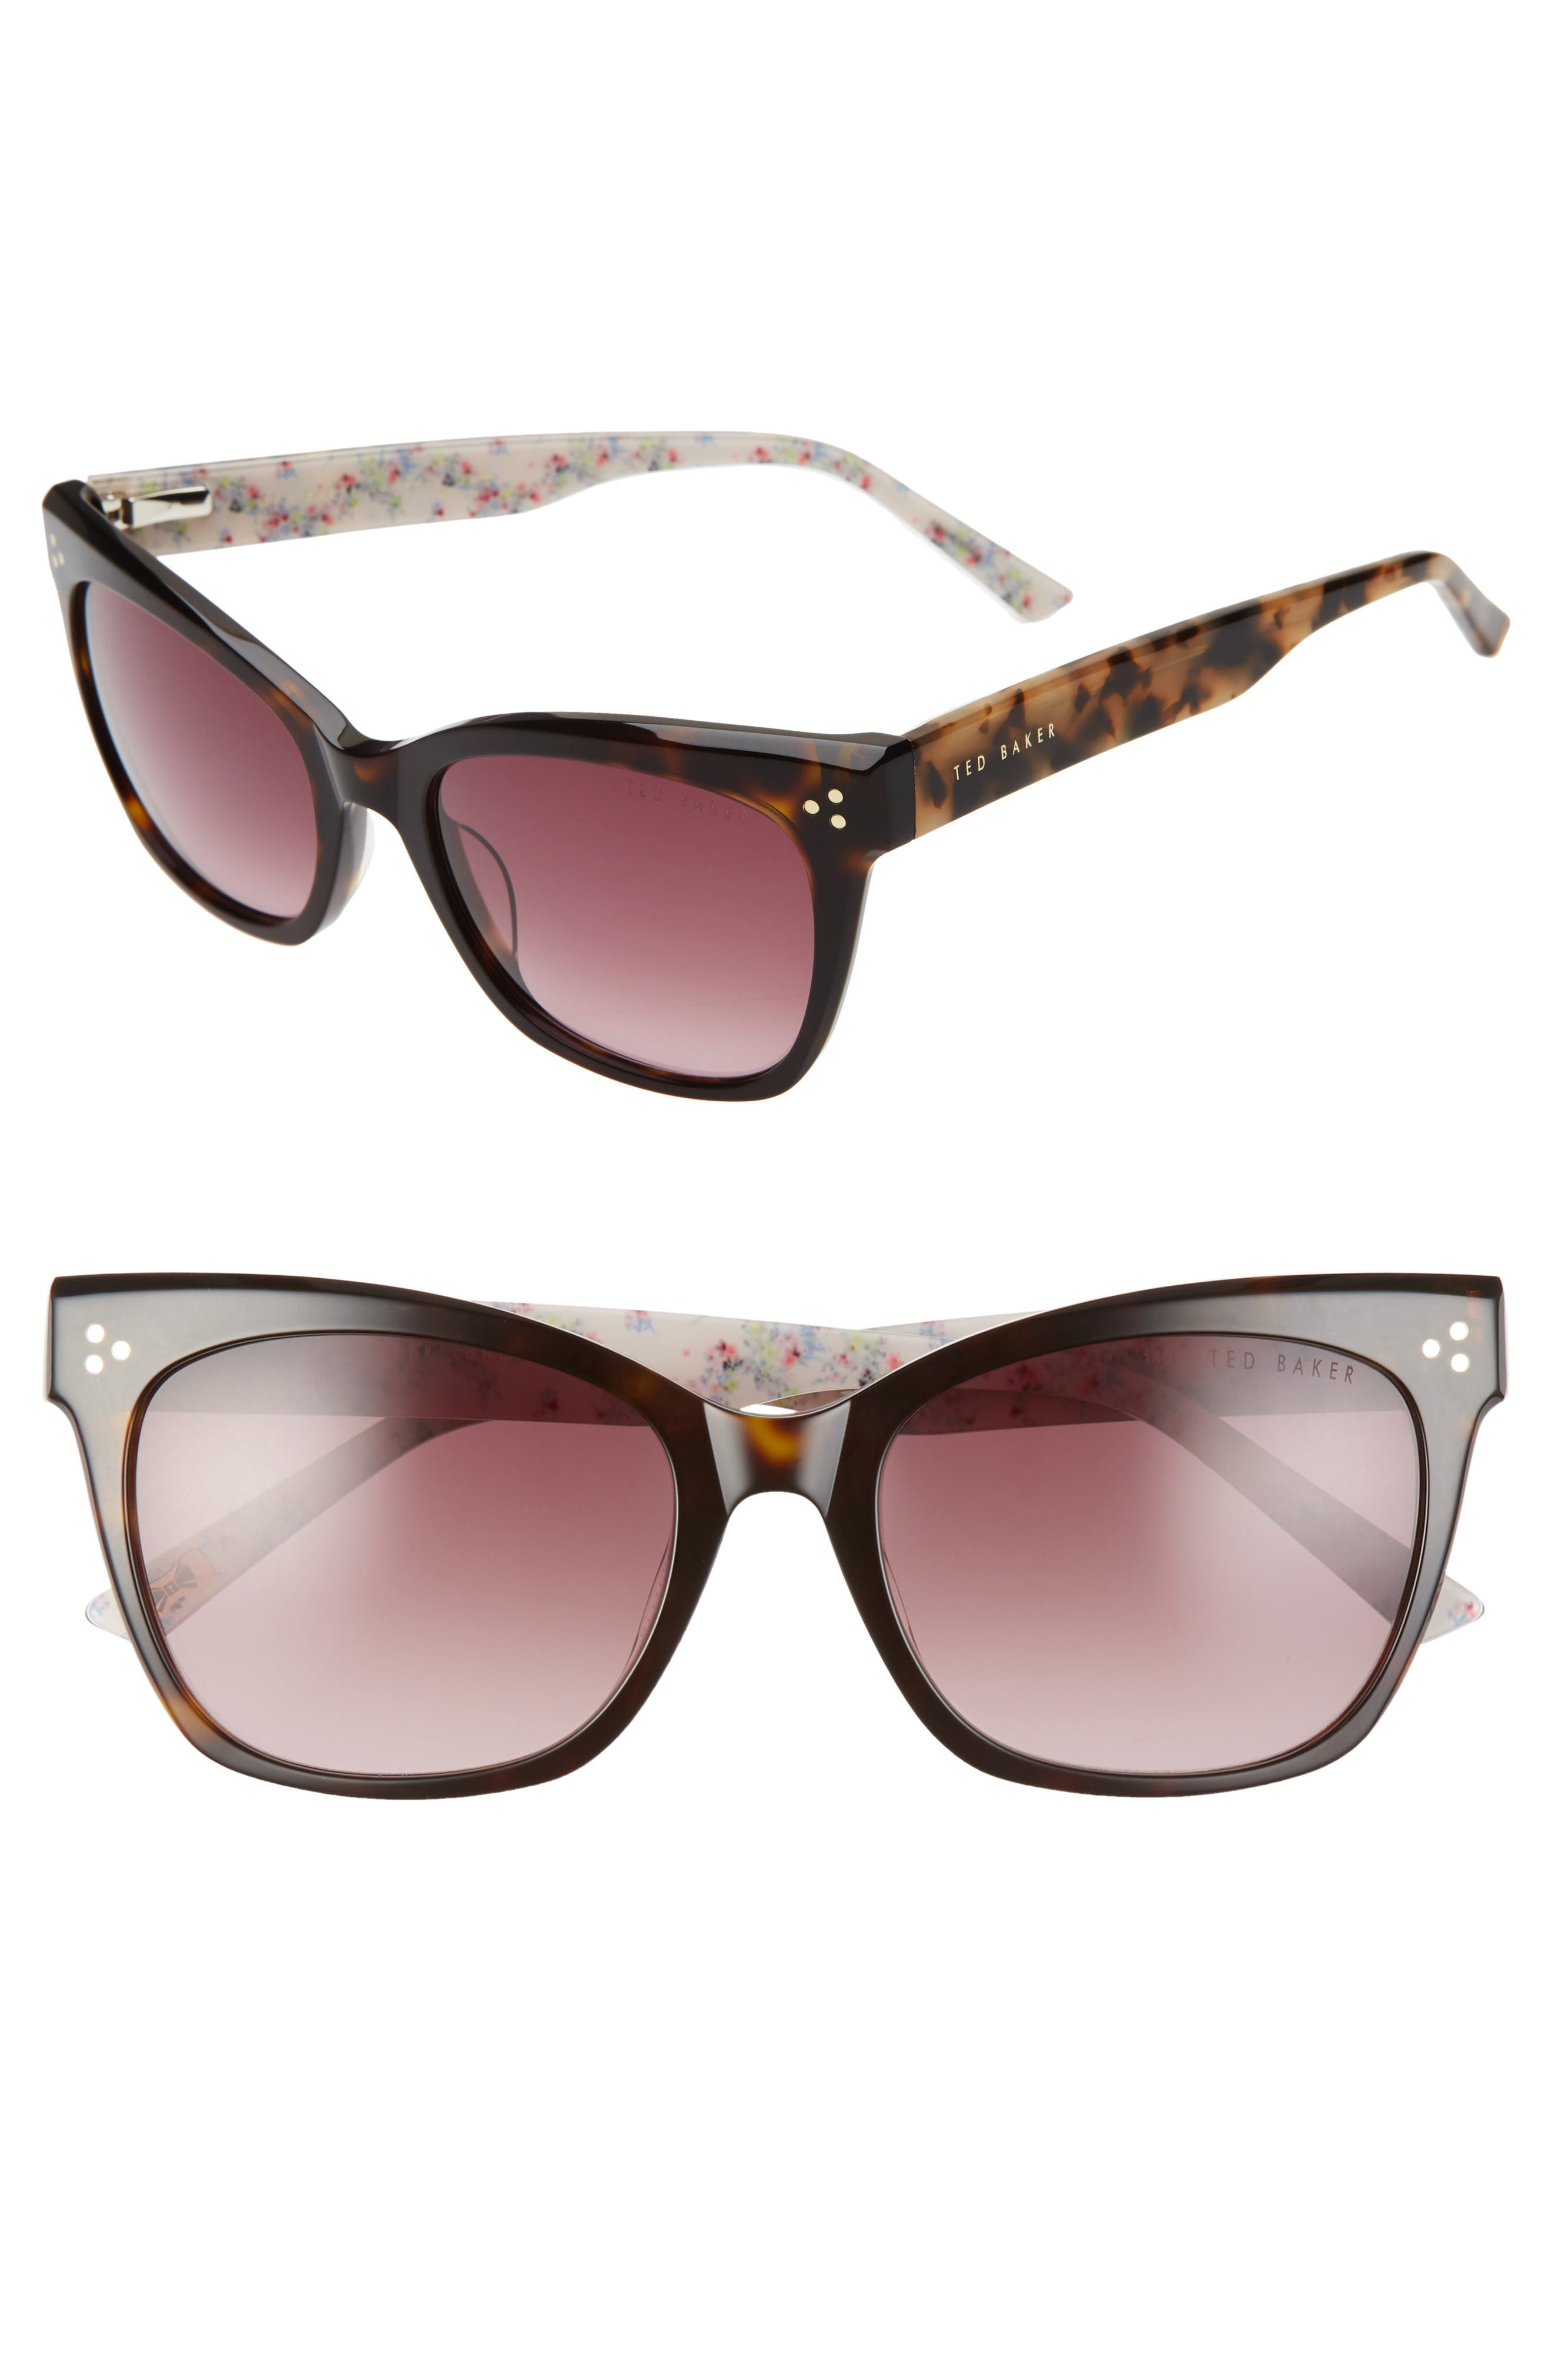 Flowery lining at the temples adds a pretty touch to classic sunglasses that offer full sun protection. Style Name: Ted Baker London 53mm Square Sunglasses. Style Number: 5987436. Available in stores.